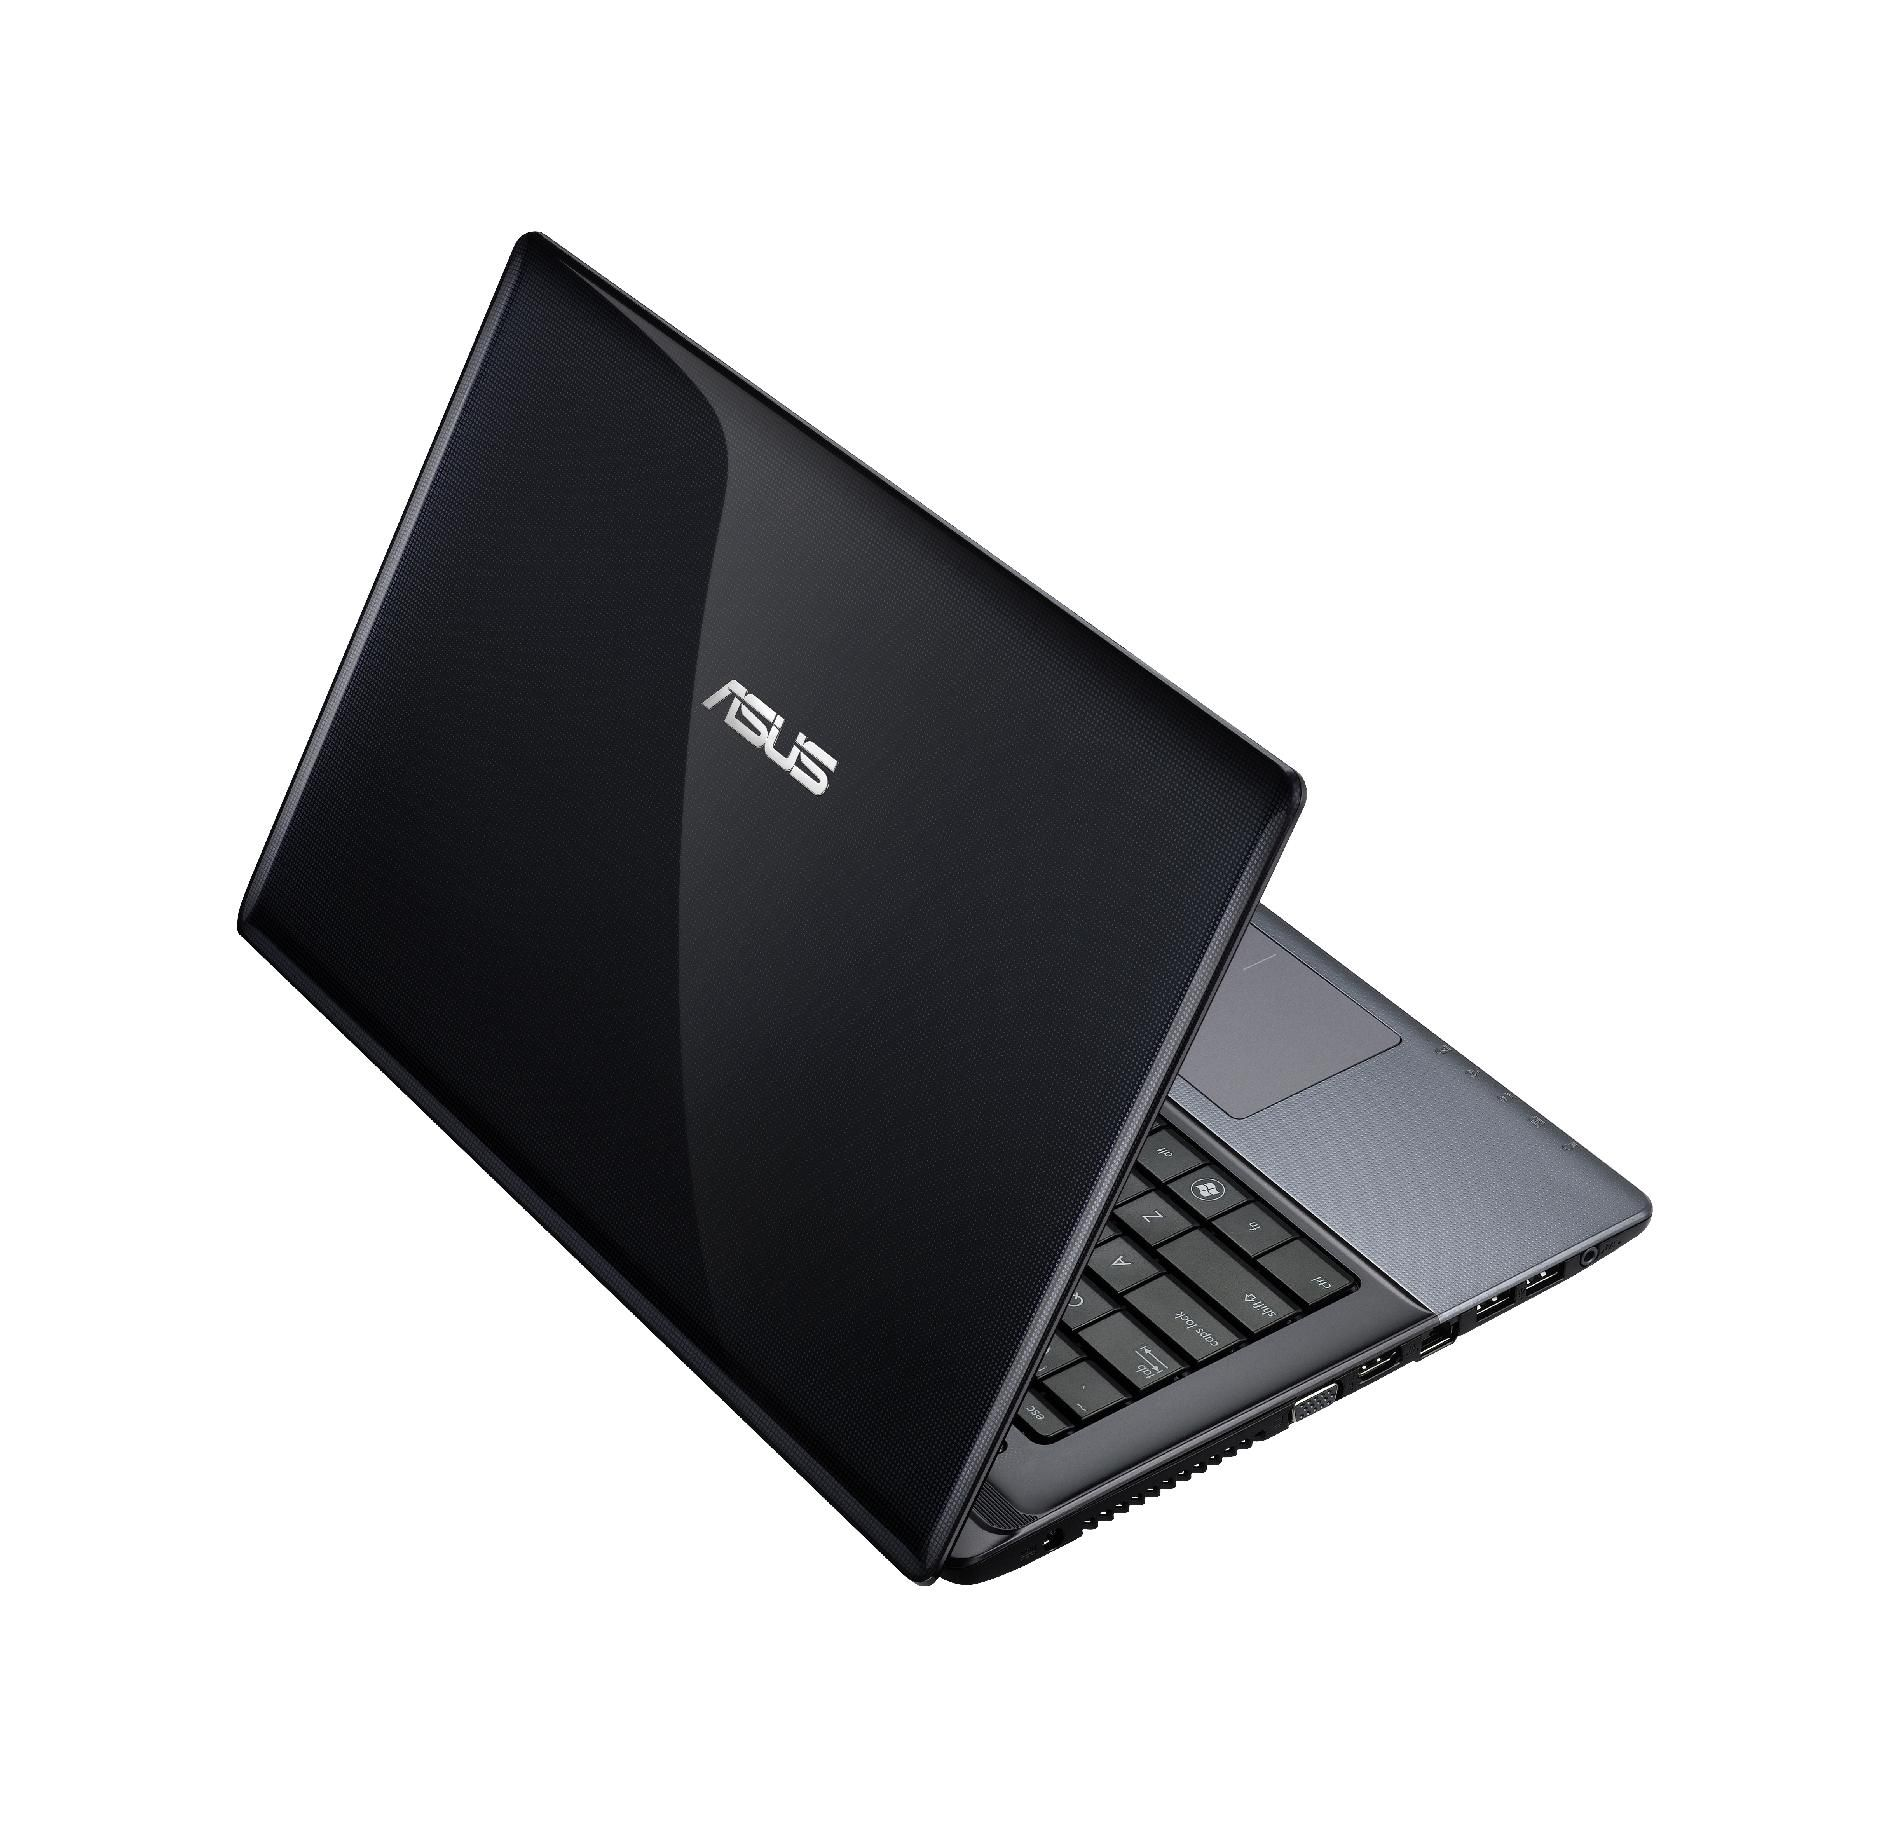 "Asus 14"" X45U-RIN4 Notebook PC w/ AMD E1 1200 Processor"